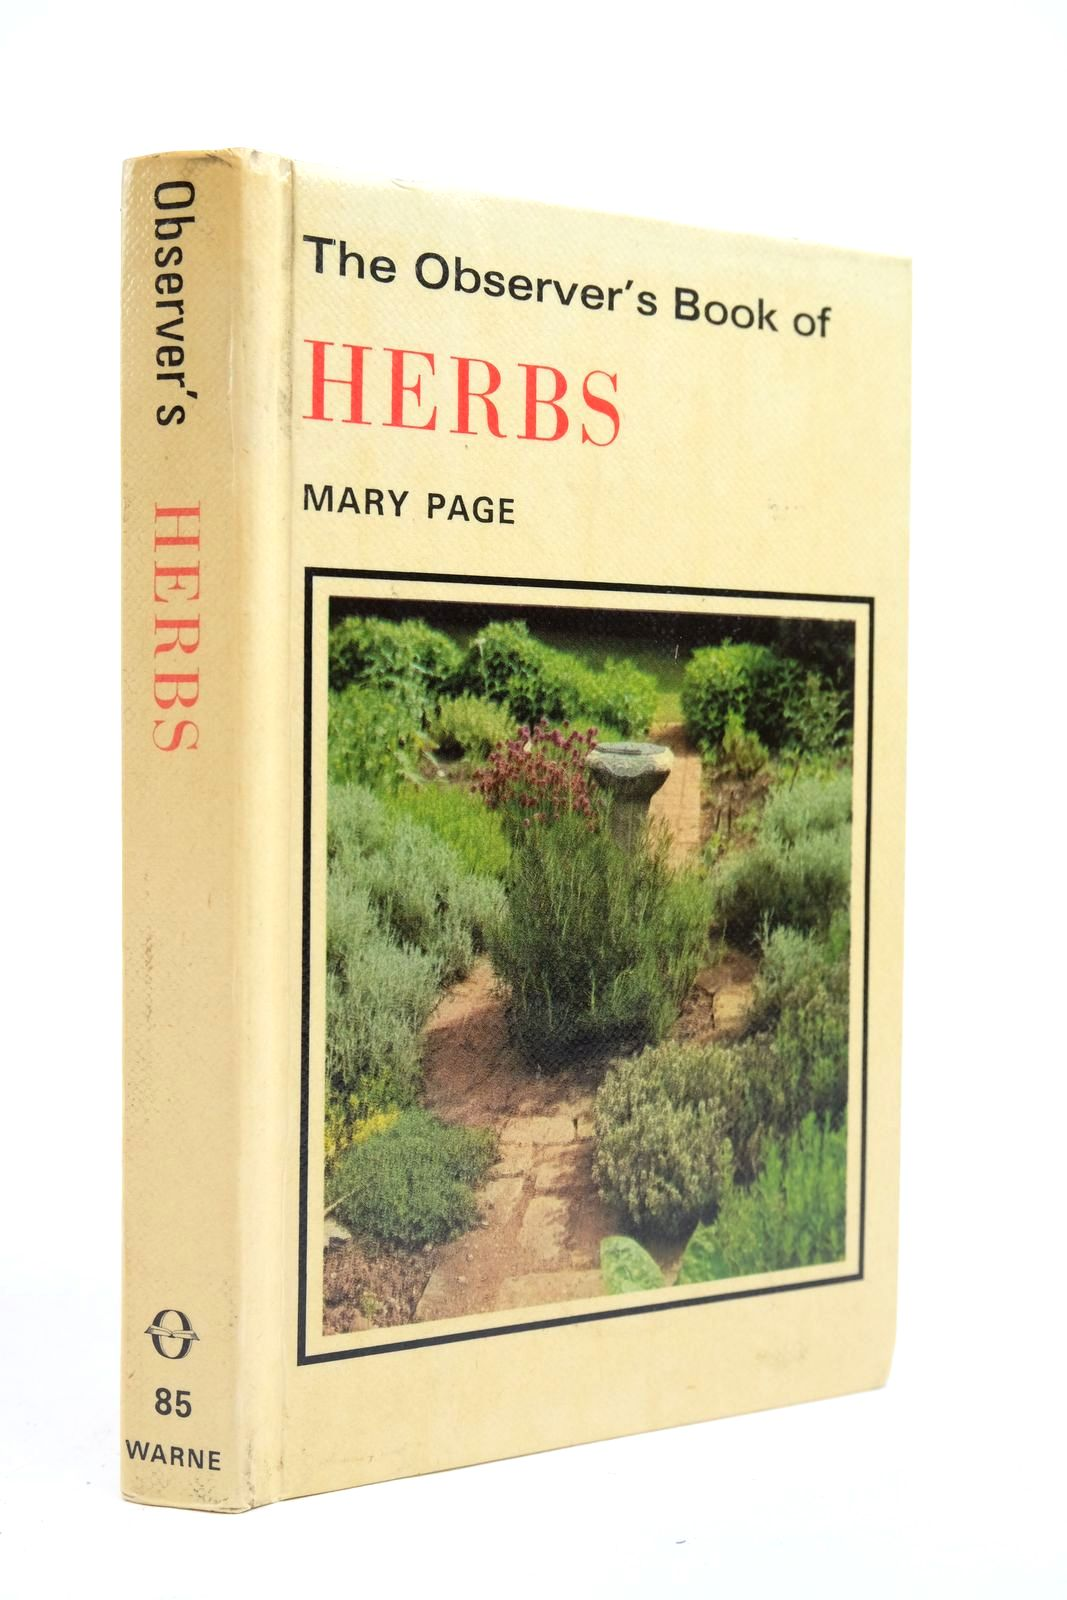 Photo of THE OBSERVER'S BOOK OF HERBS written by Page, Mary illustrated by Barber, Norman published by Frederick Warne & Co Ltd. (STOCK CODE: 2134662)  for sale by Stella & Rose's Books